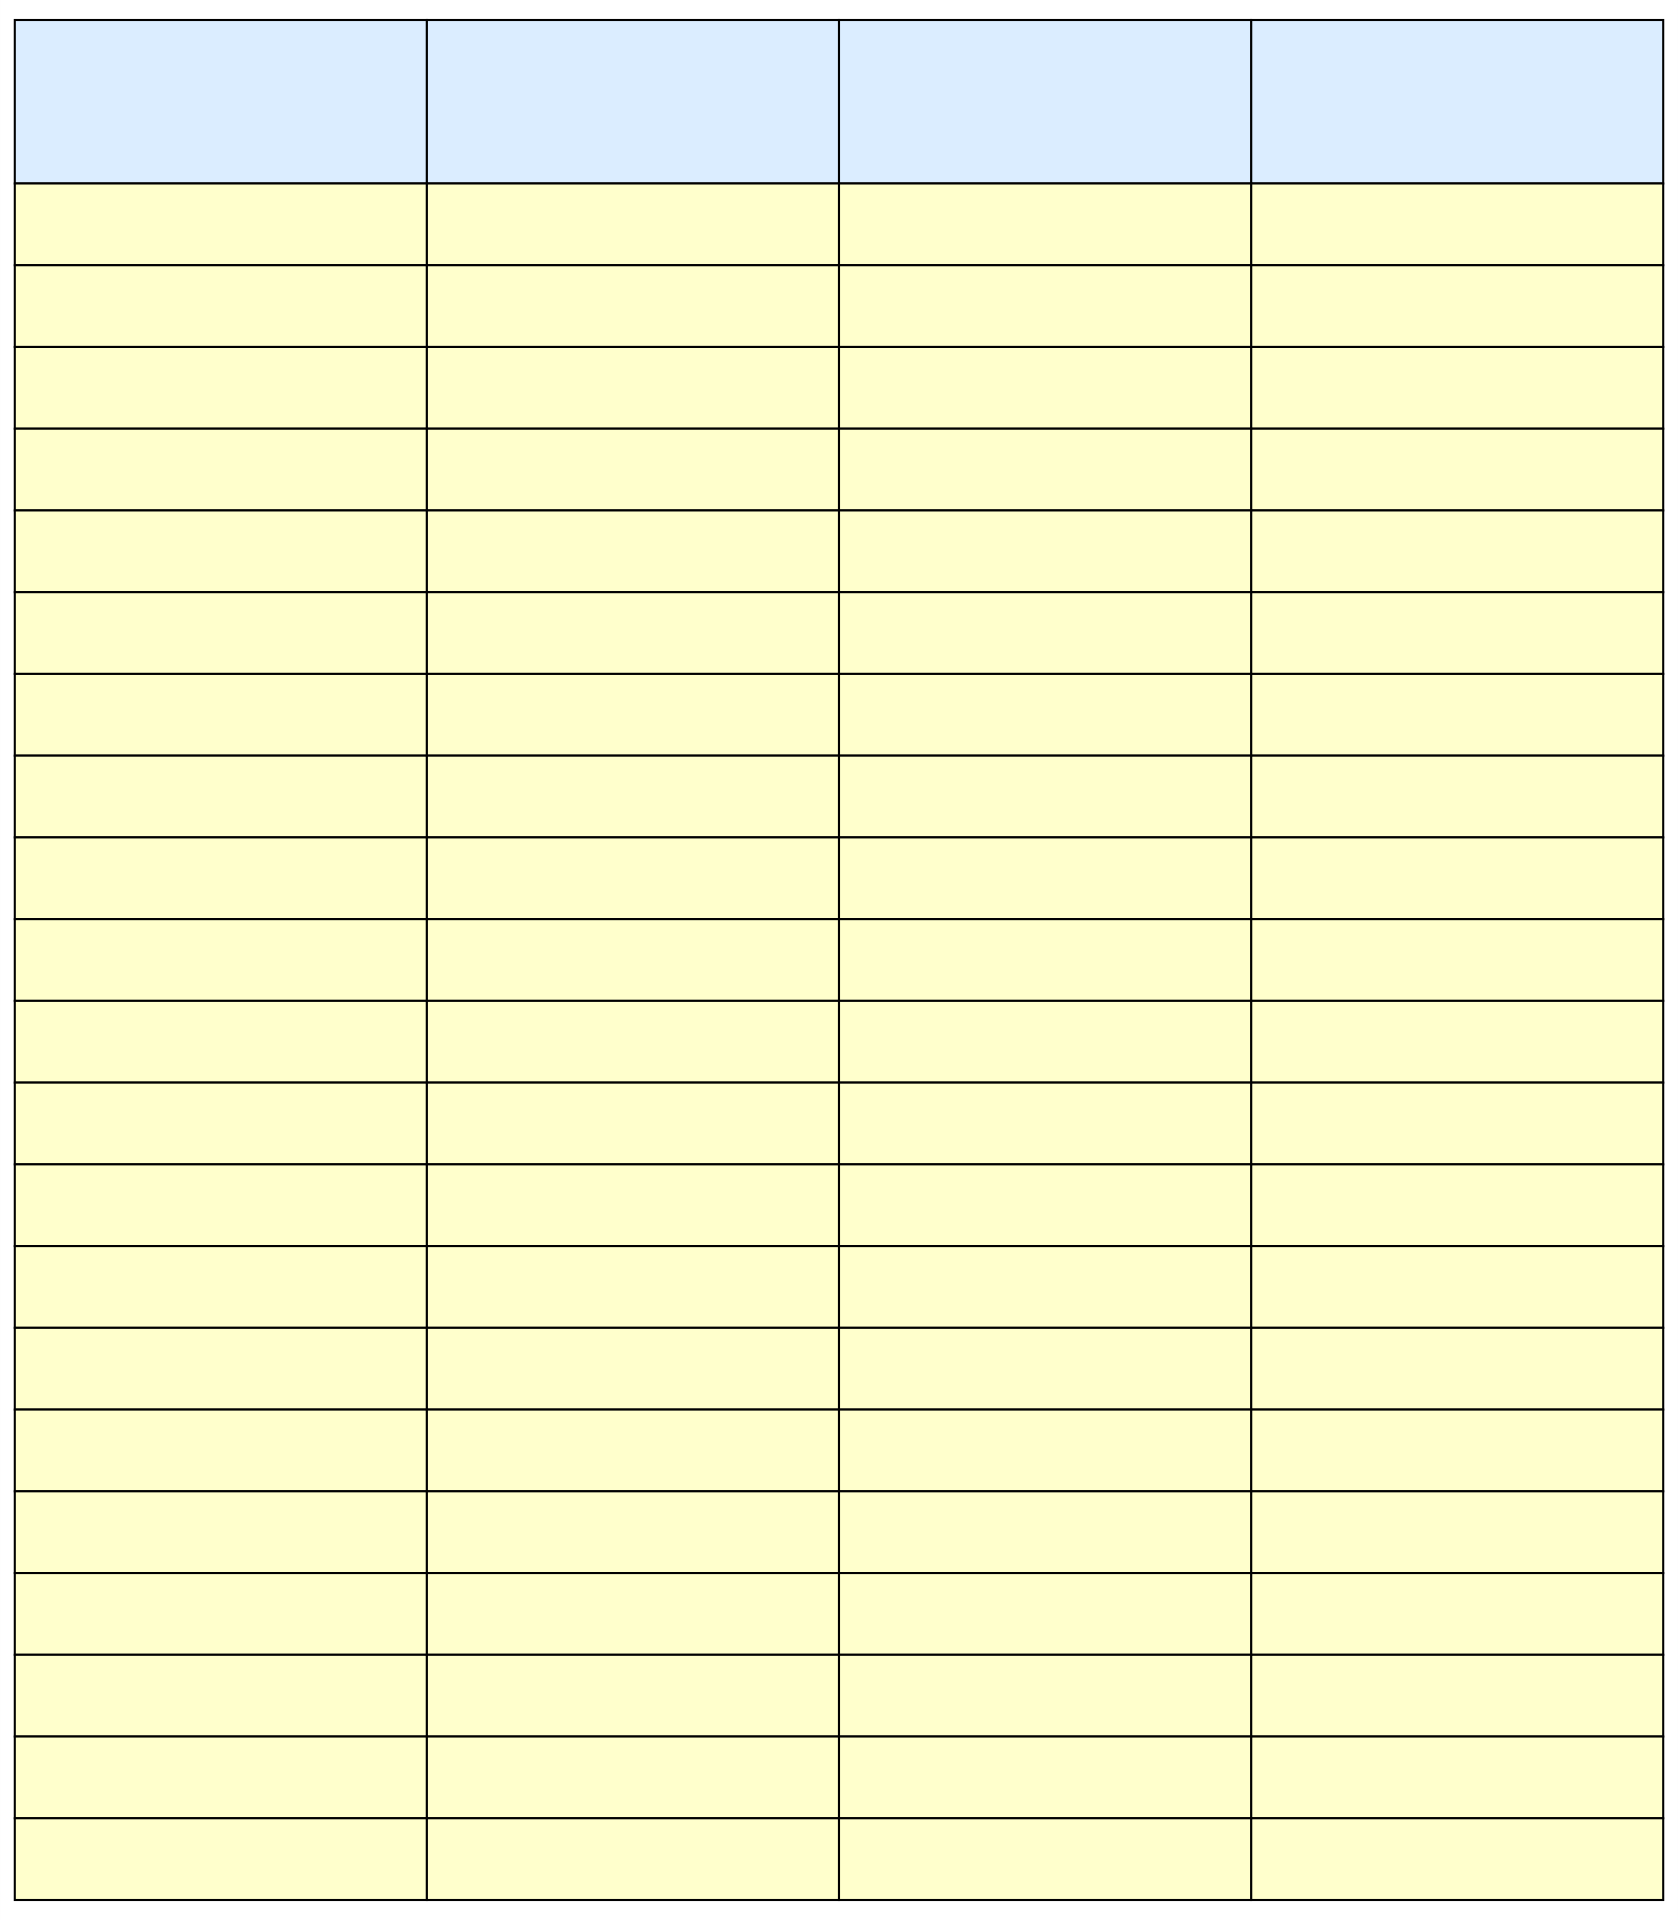 Printable Column Template 5 Columns